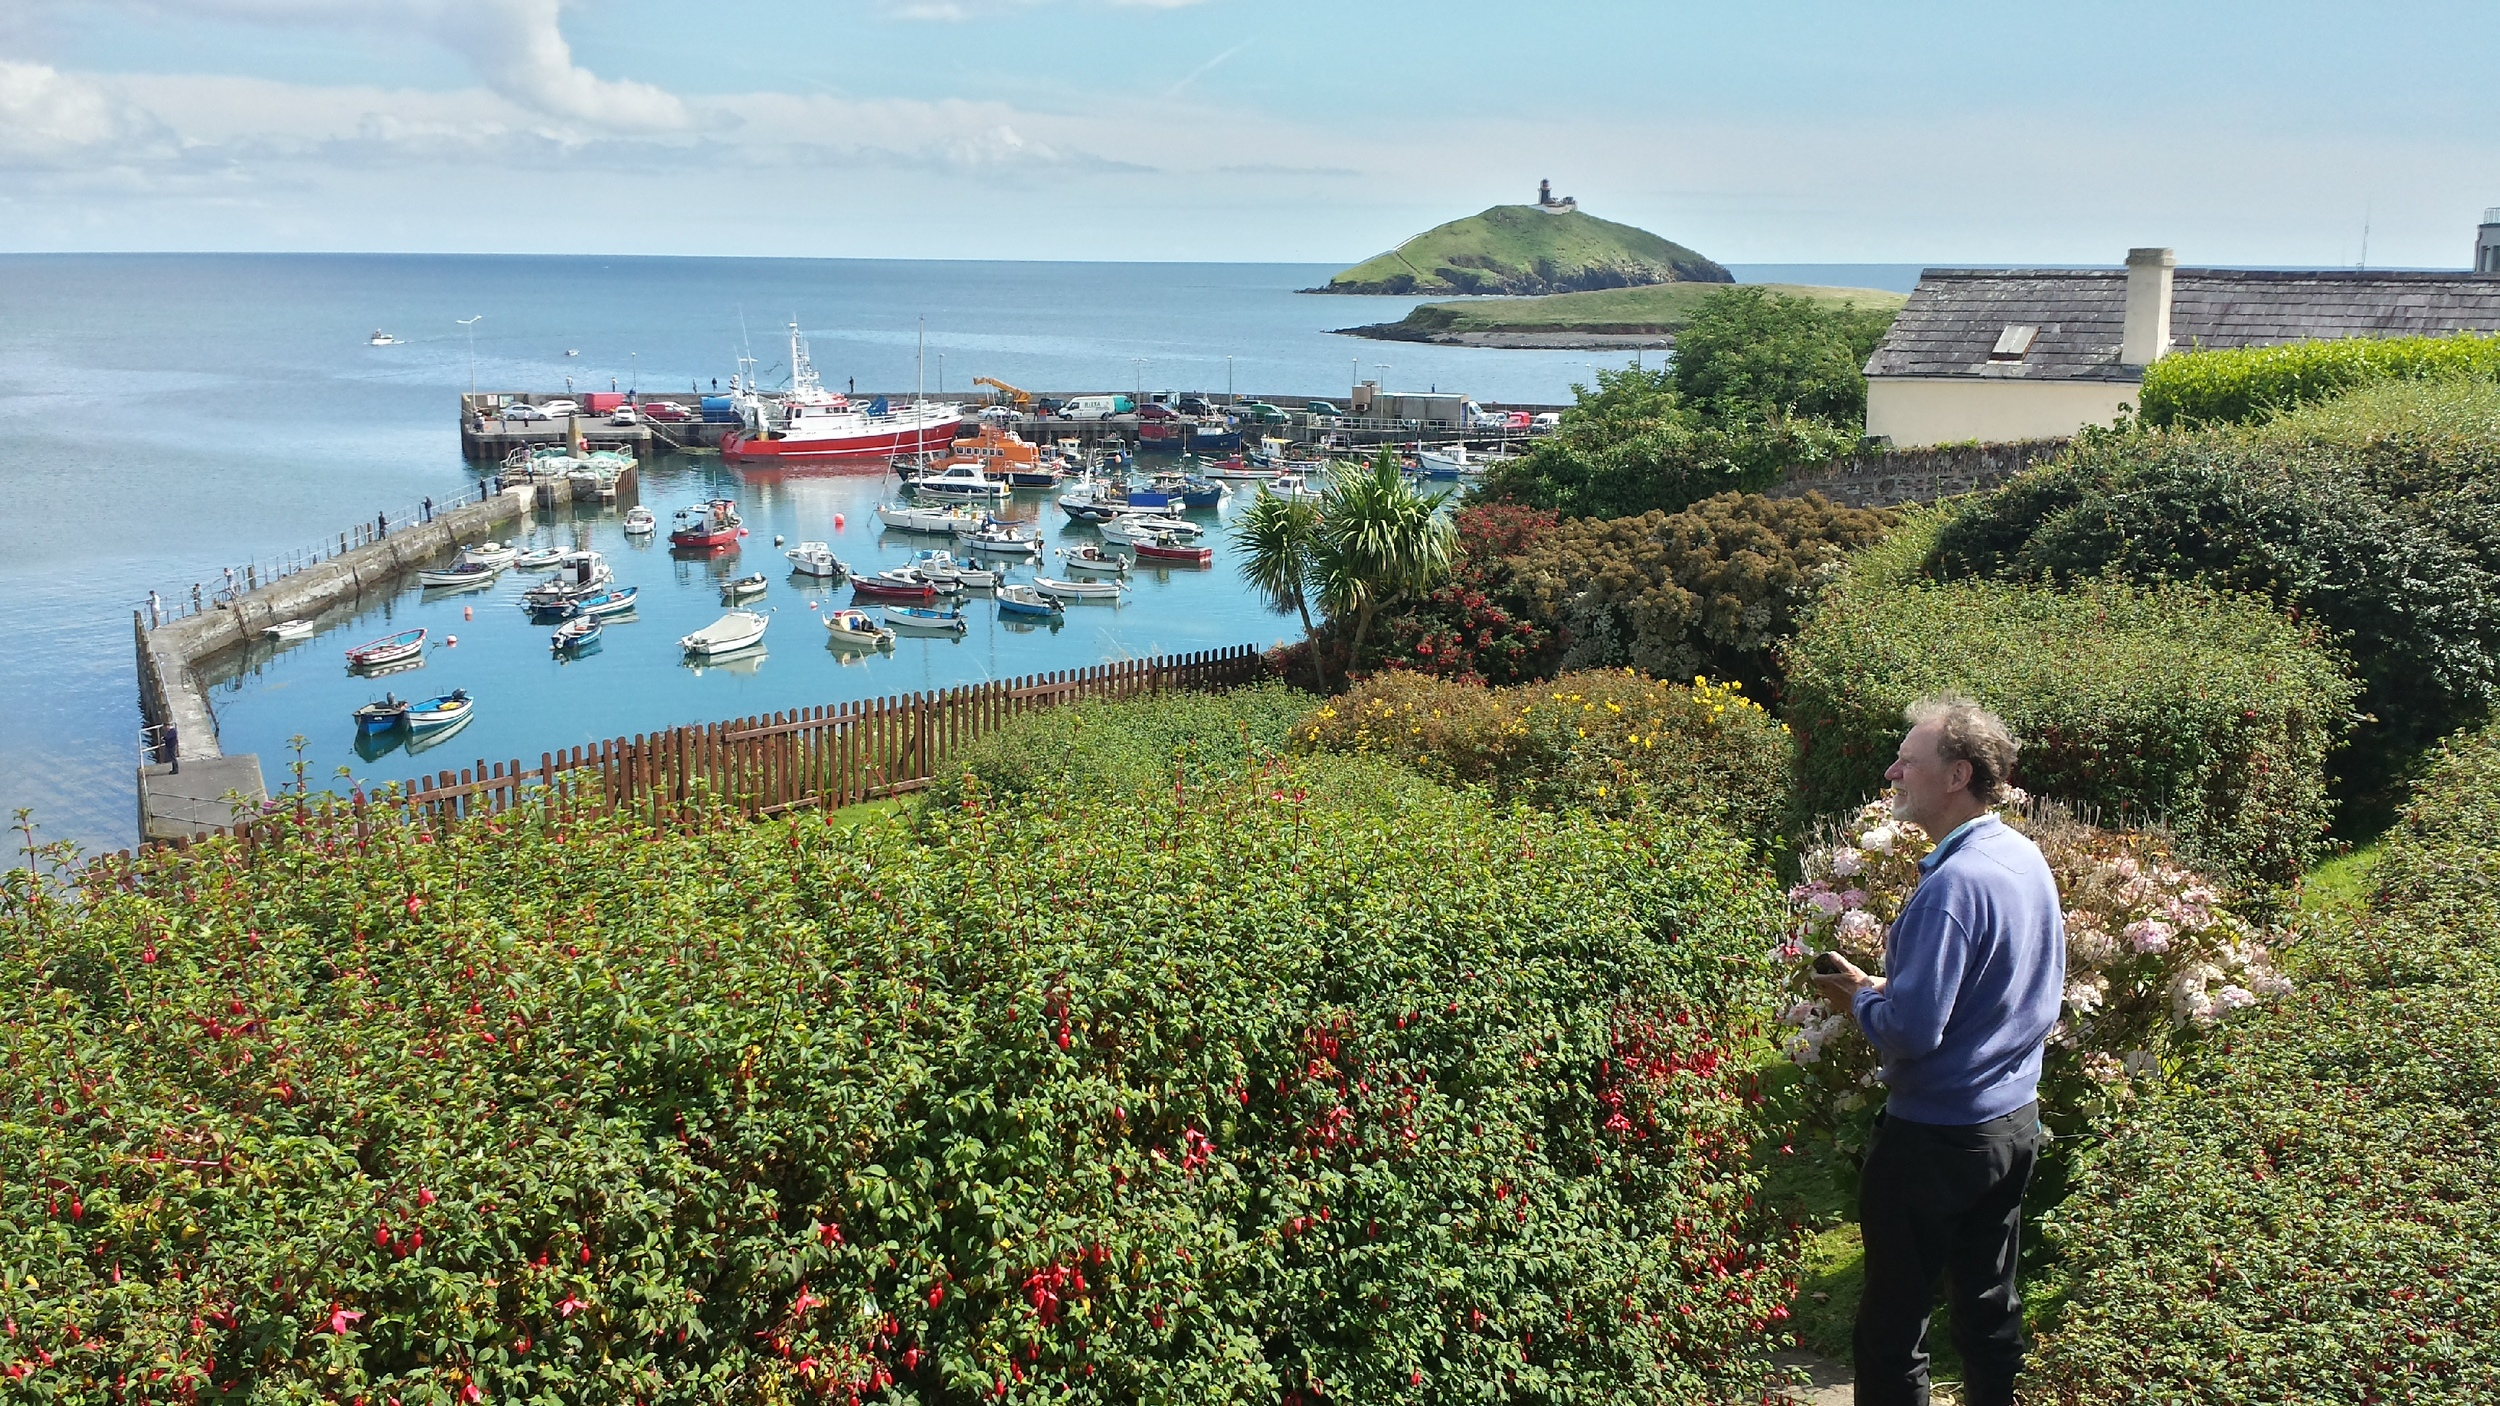 View from Ballycotton.